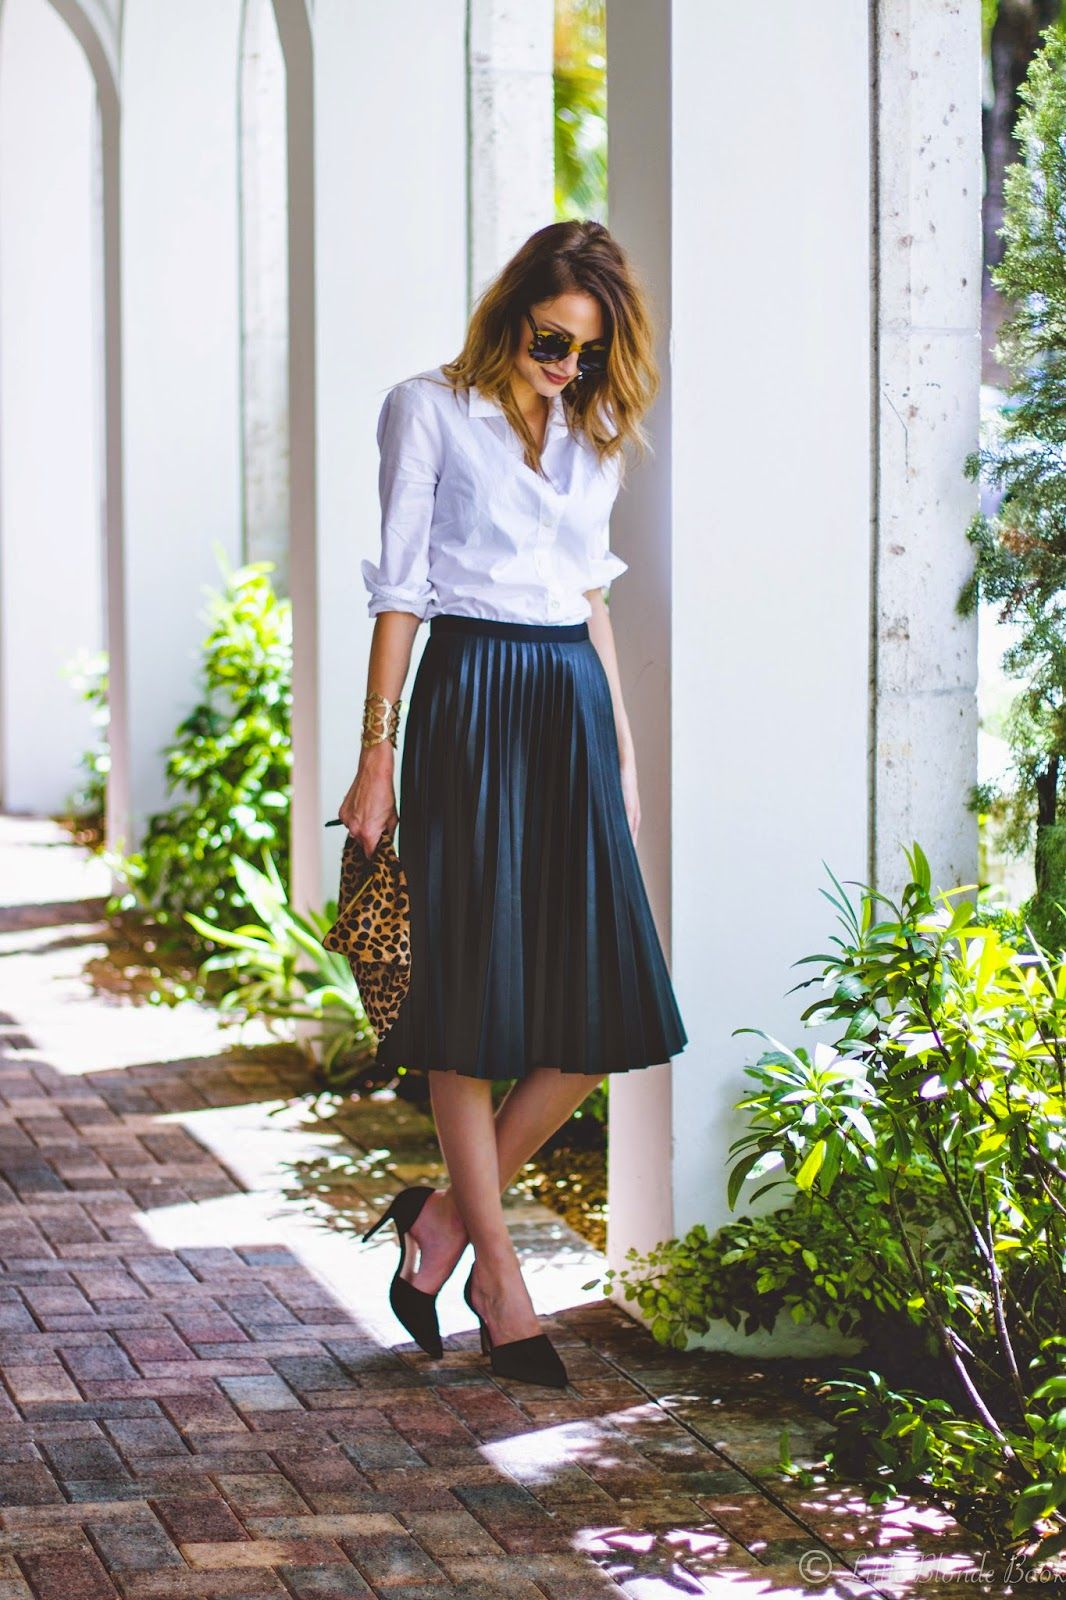 0cba66450 Taylor Morgan has created a stylish and sophisticated look by combining a  bottle green pleated skirt with heels and a white shirt. Add some striking  leopard ...